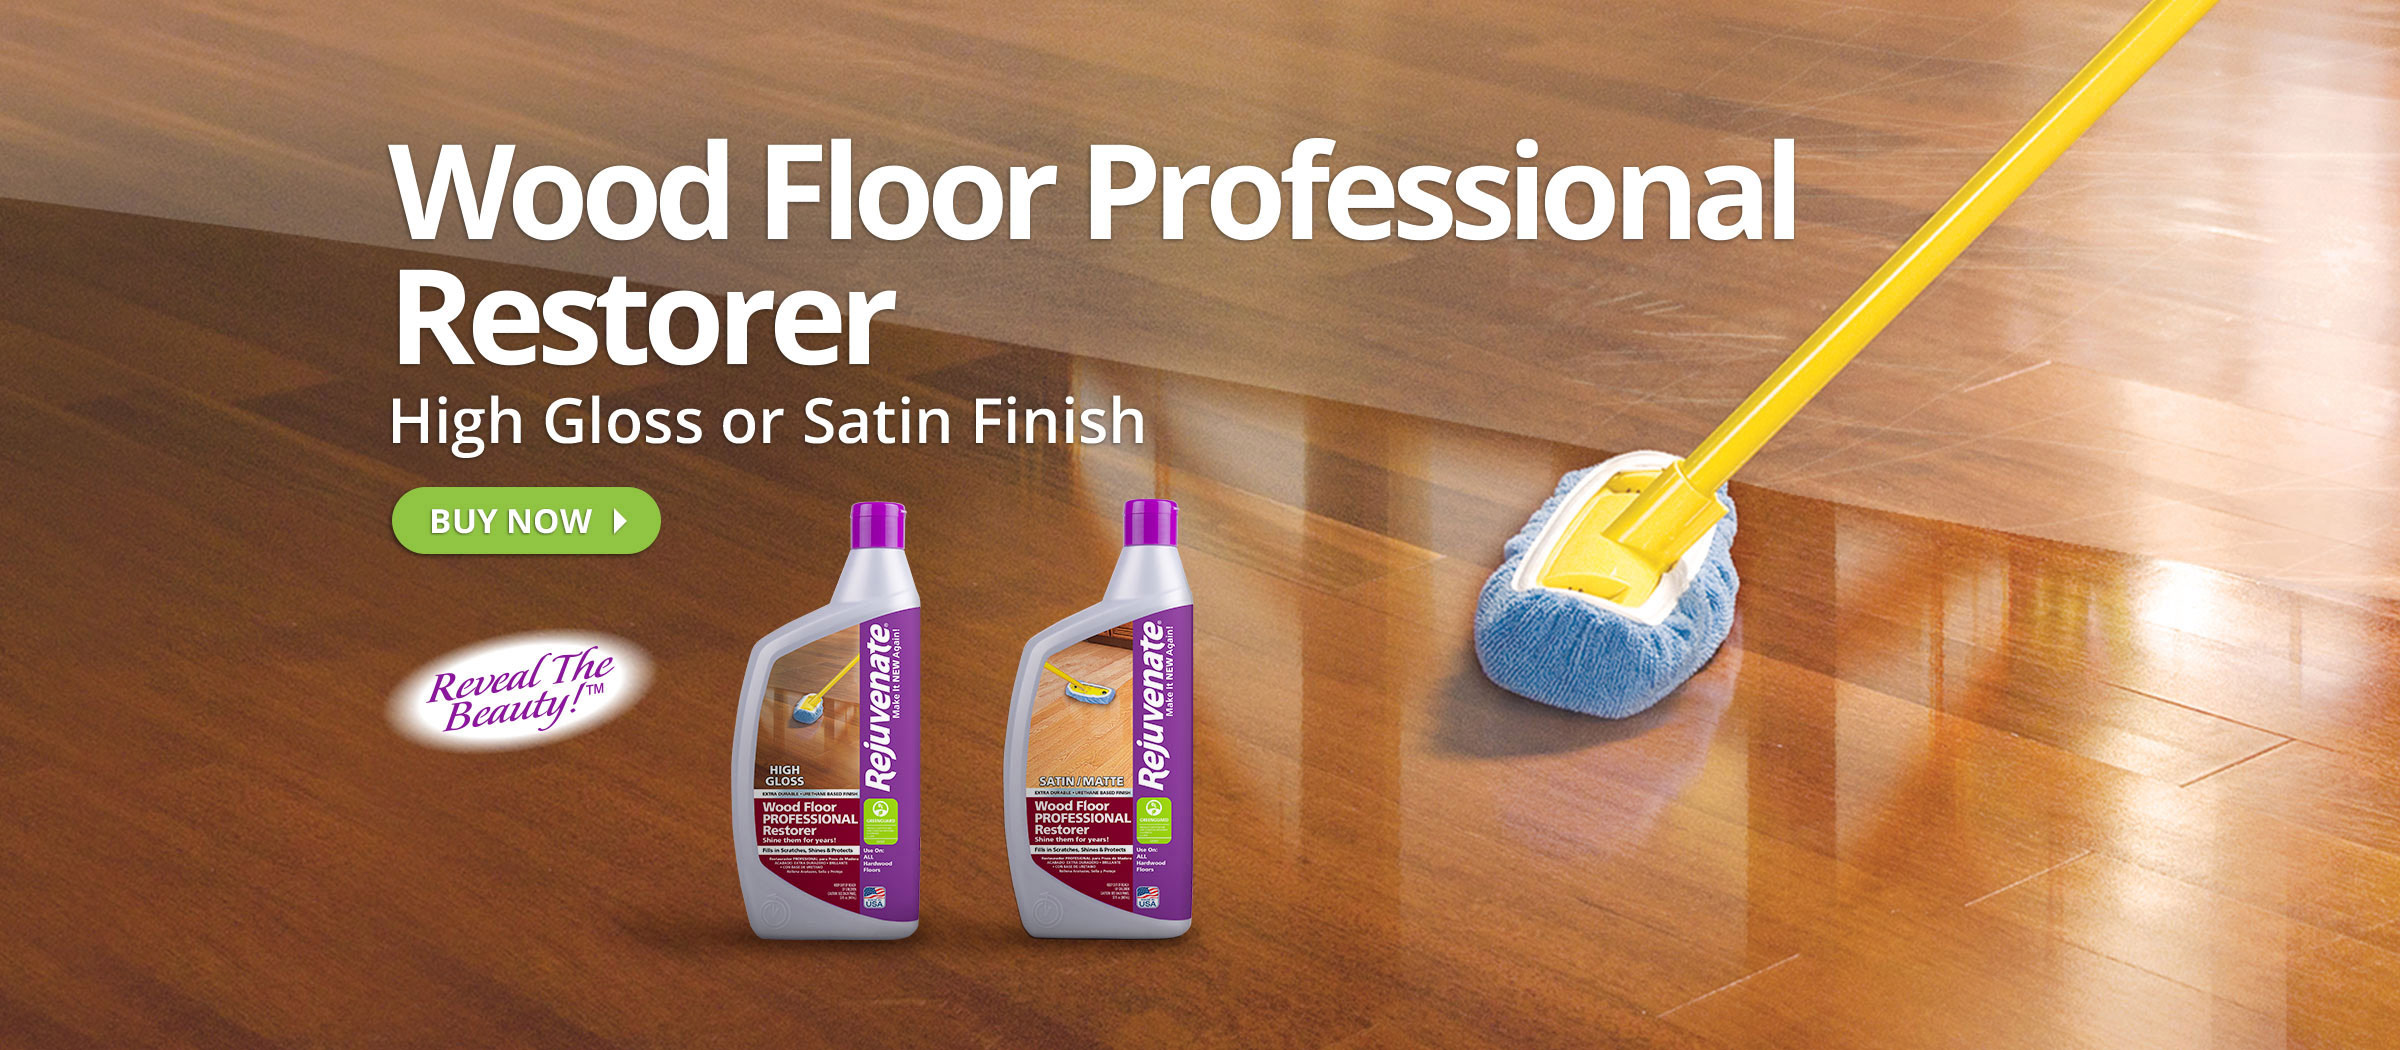 Rejuvenate Wood Floor Restorer